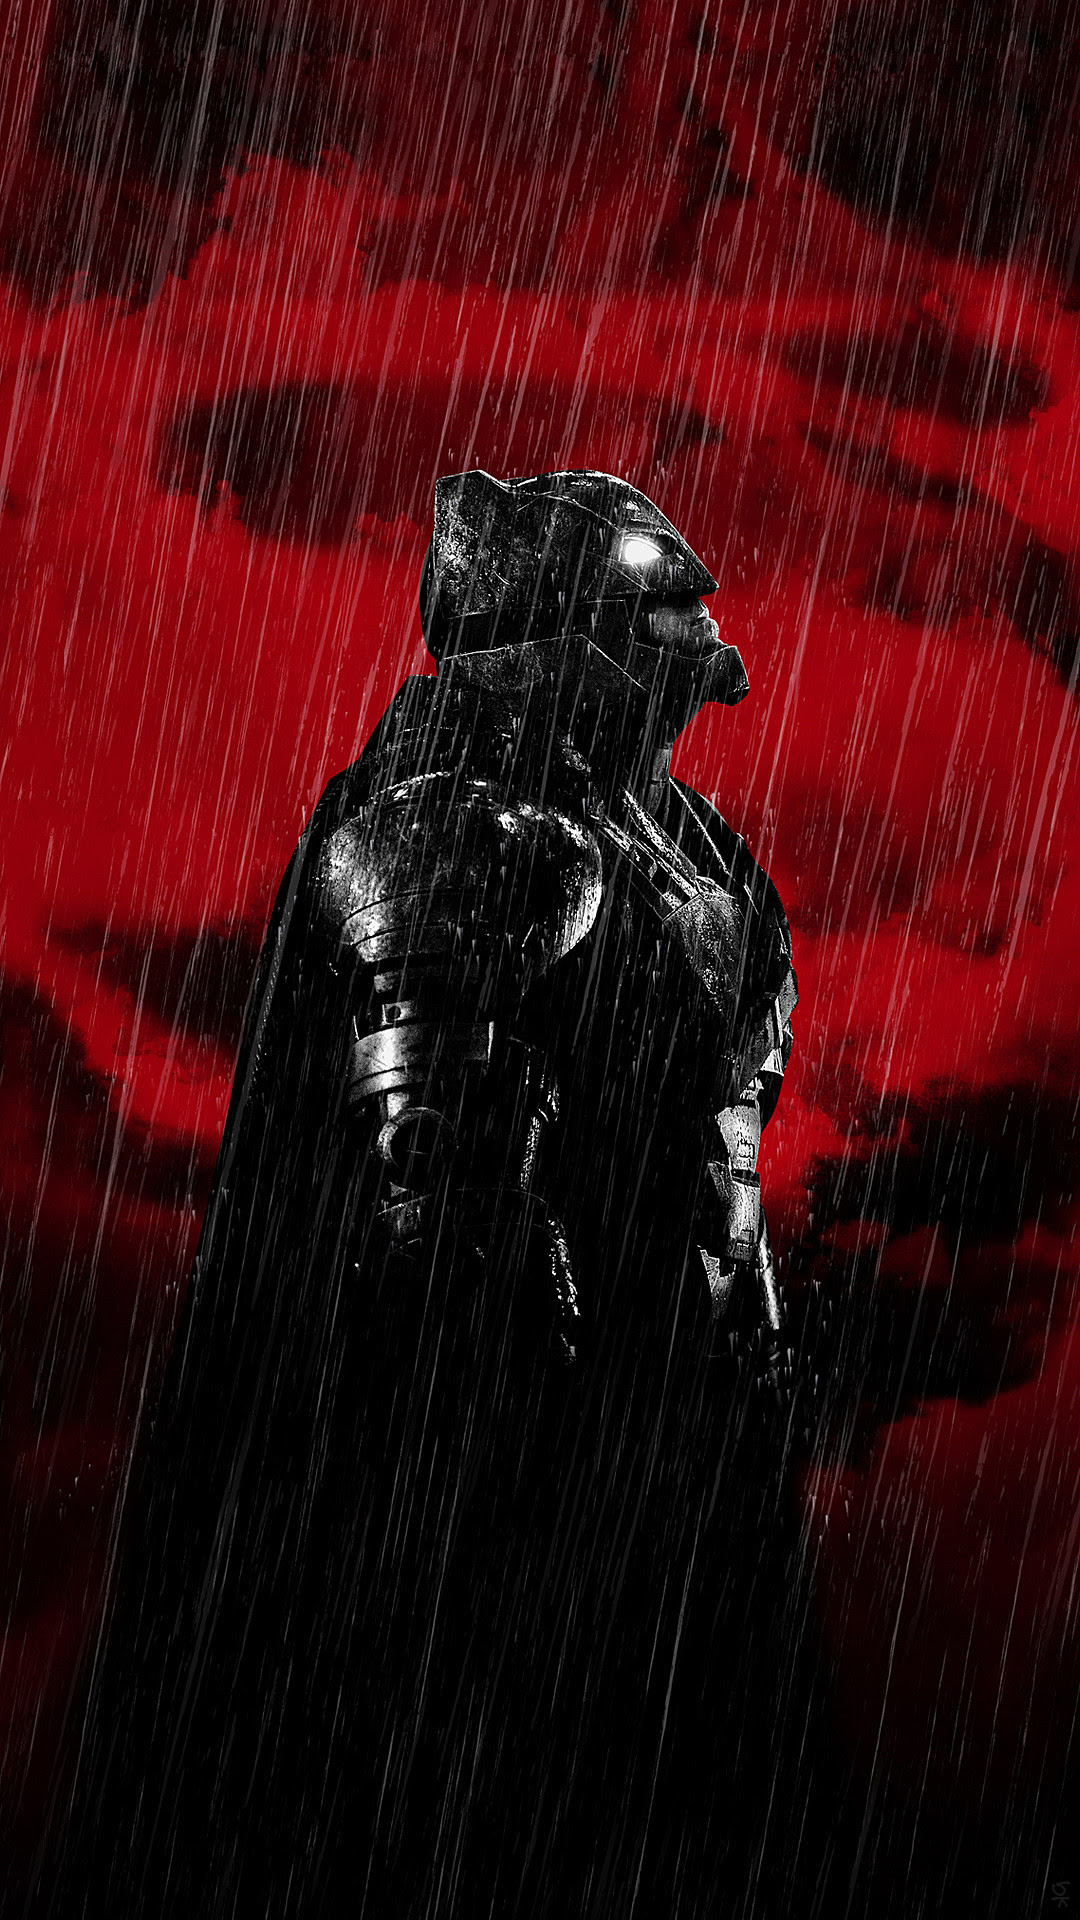 Wallpaper Iphone Wallpaper Batman Vs Superman